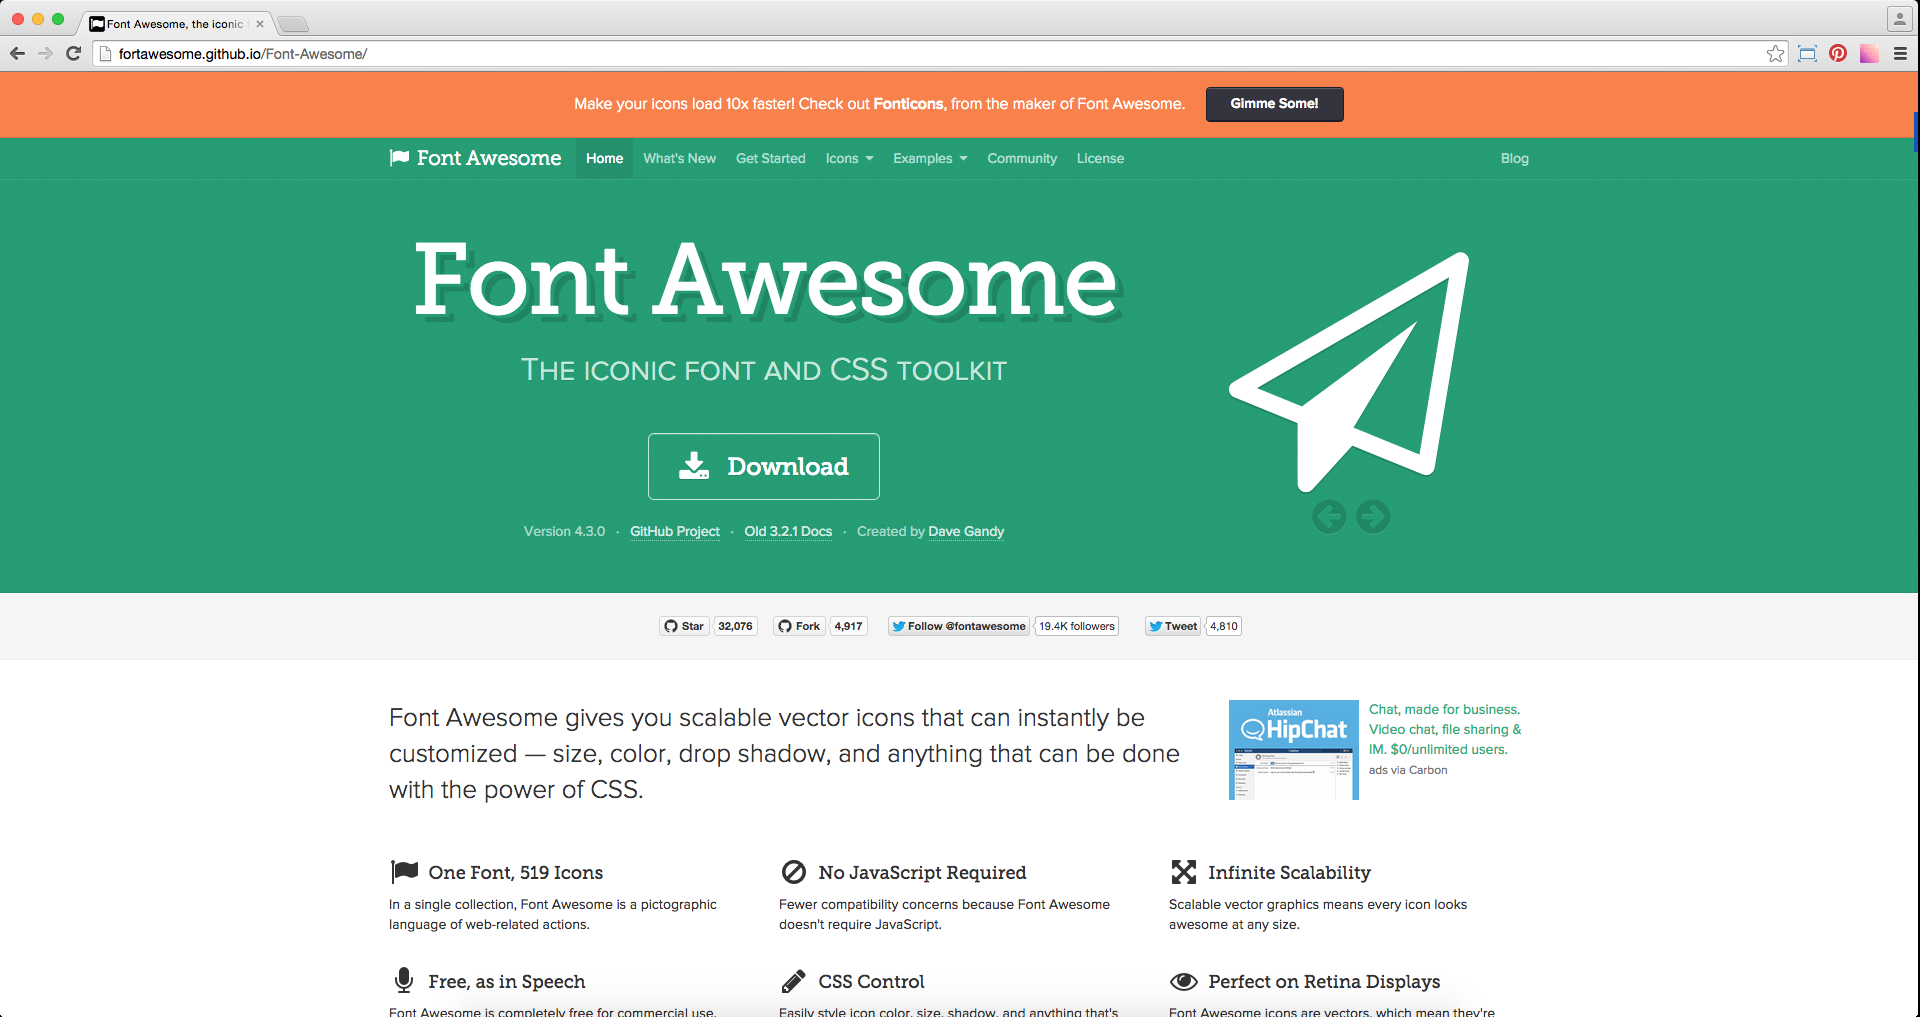 Font Awesome Icons Web design tools, Fonts, Tool design